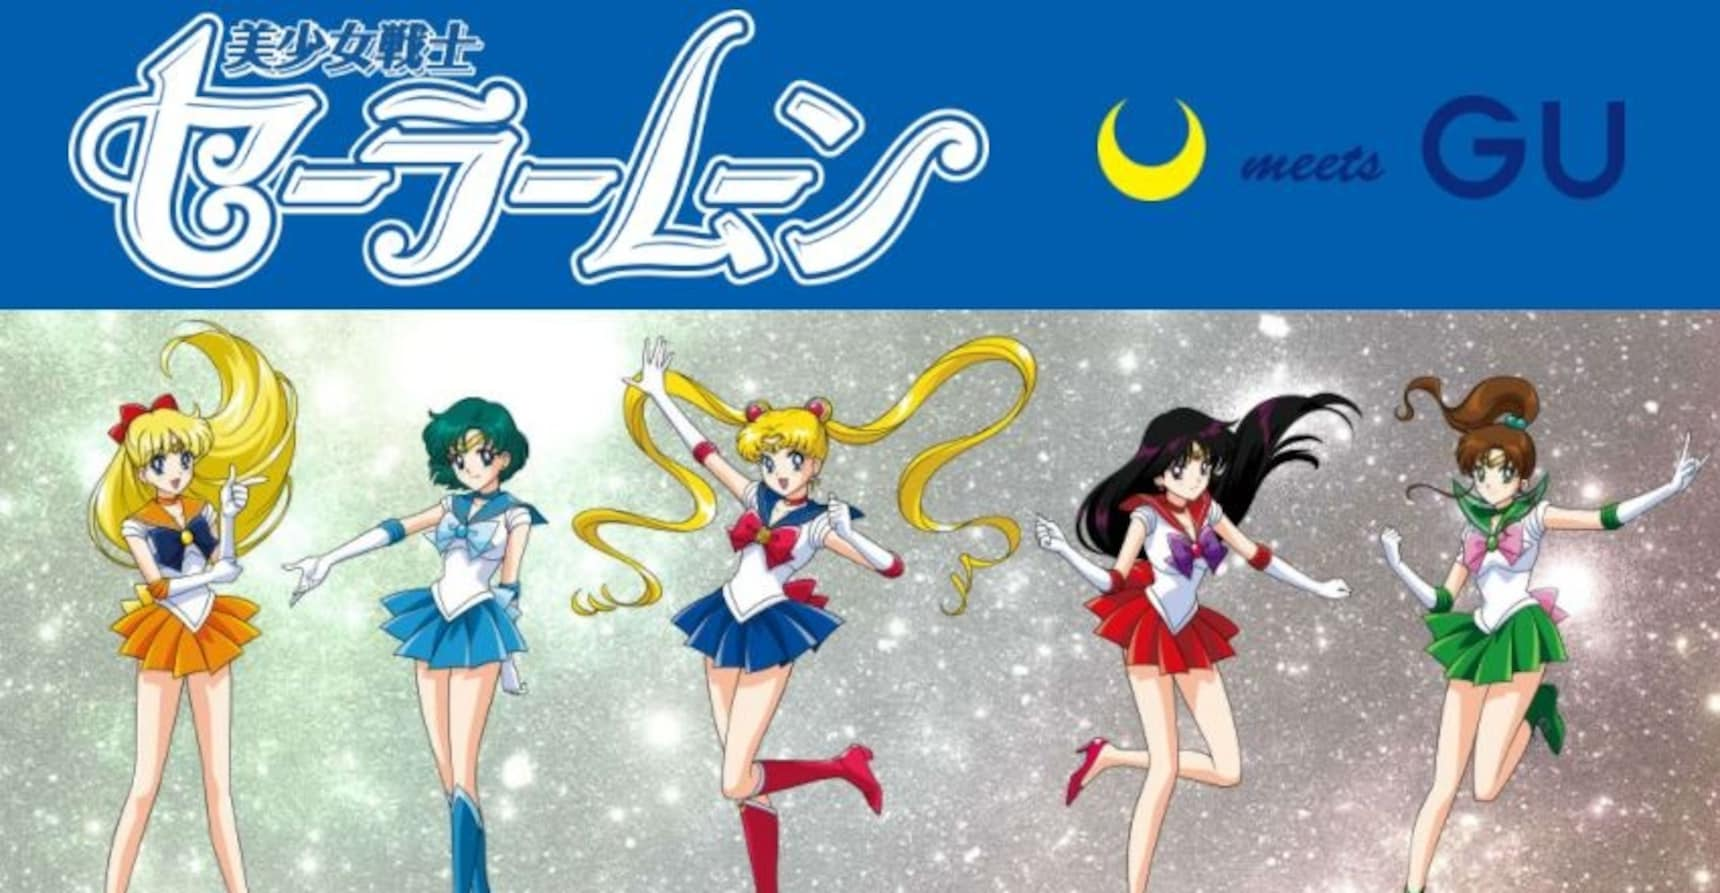 Affordable Sailor Moon Clothes Are Back at GU